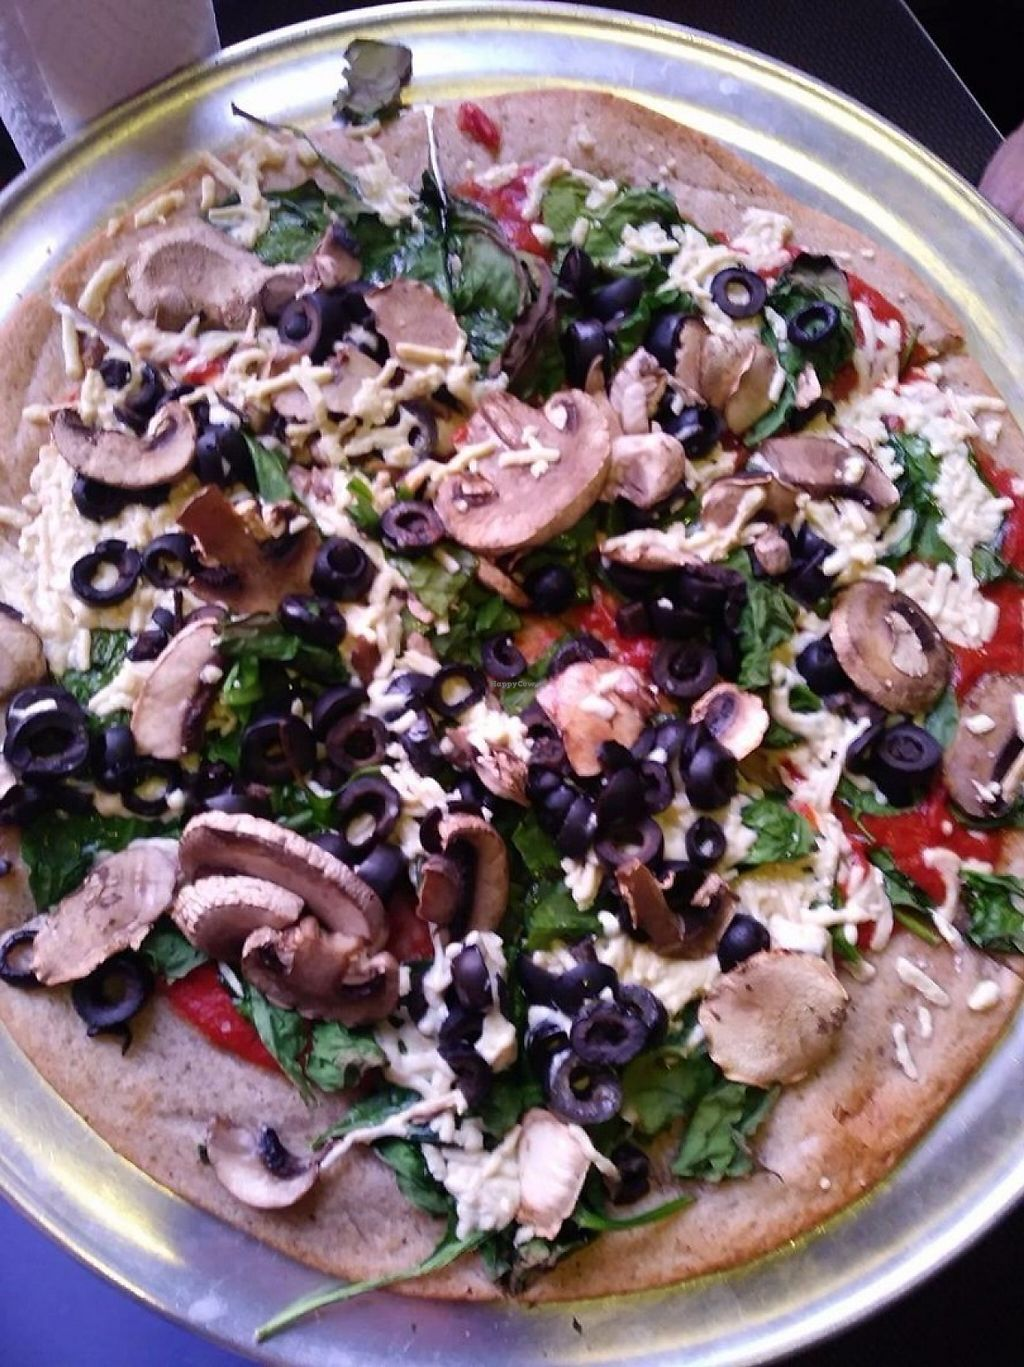 """Photo of Mellow Mushroom  by <a href=""""/members/profile/bjblunt71"""">bjblunt71</a> <br/>Gluten-free ~ Vegan ~ Mushrooms ~ Black Olives ~ Spinach ~ Daiya Mozzarella ~ Red Sauce <br/> June 6, 2017  - <a href='/contact/abuse/image/61470/266224'>Report</a>"""